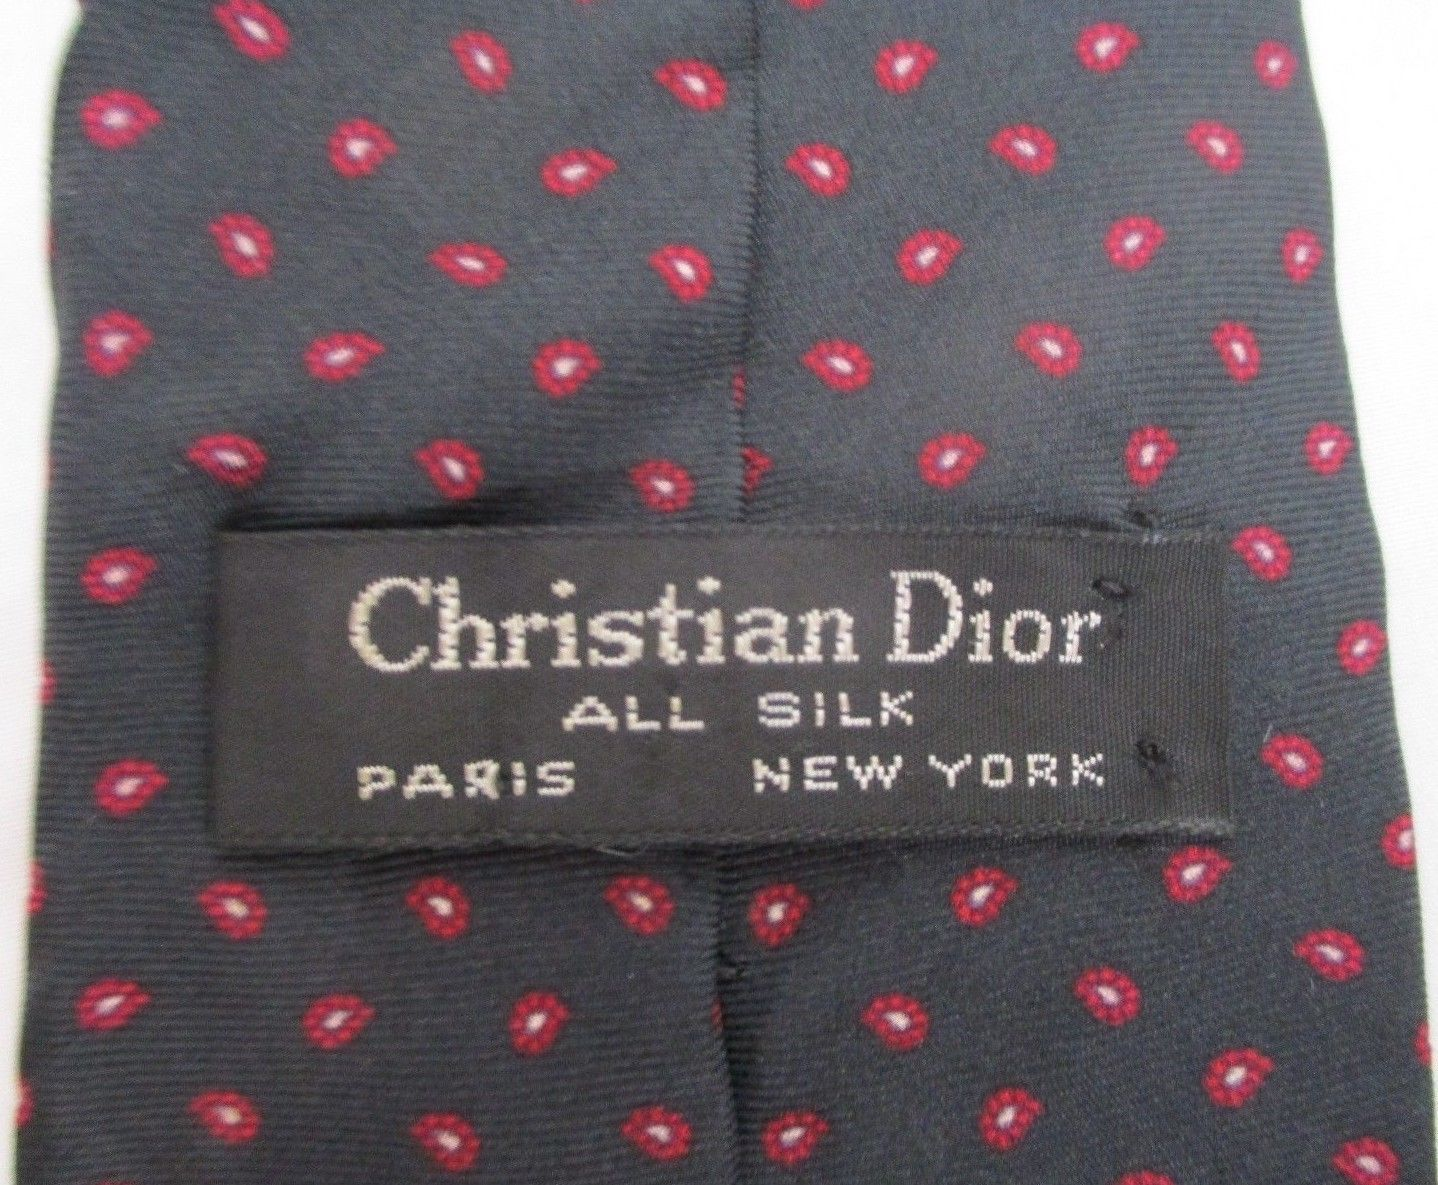 03831f24e60e Vintage Christian Dior Tie Black Red White and 50 similar items. 57